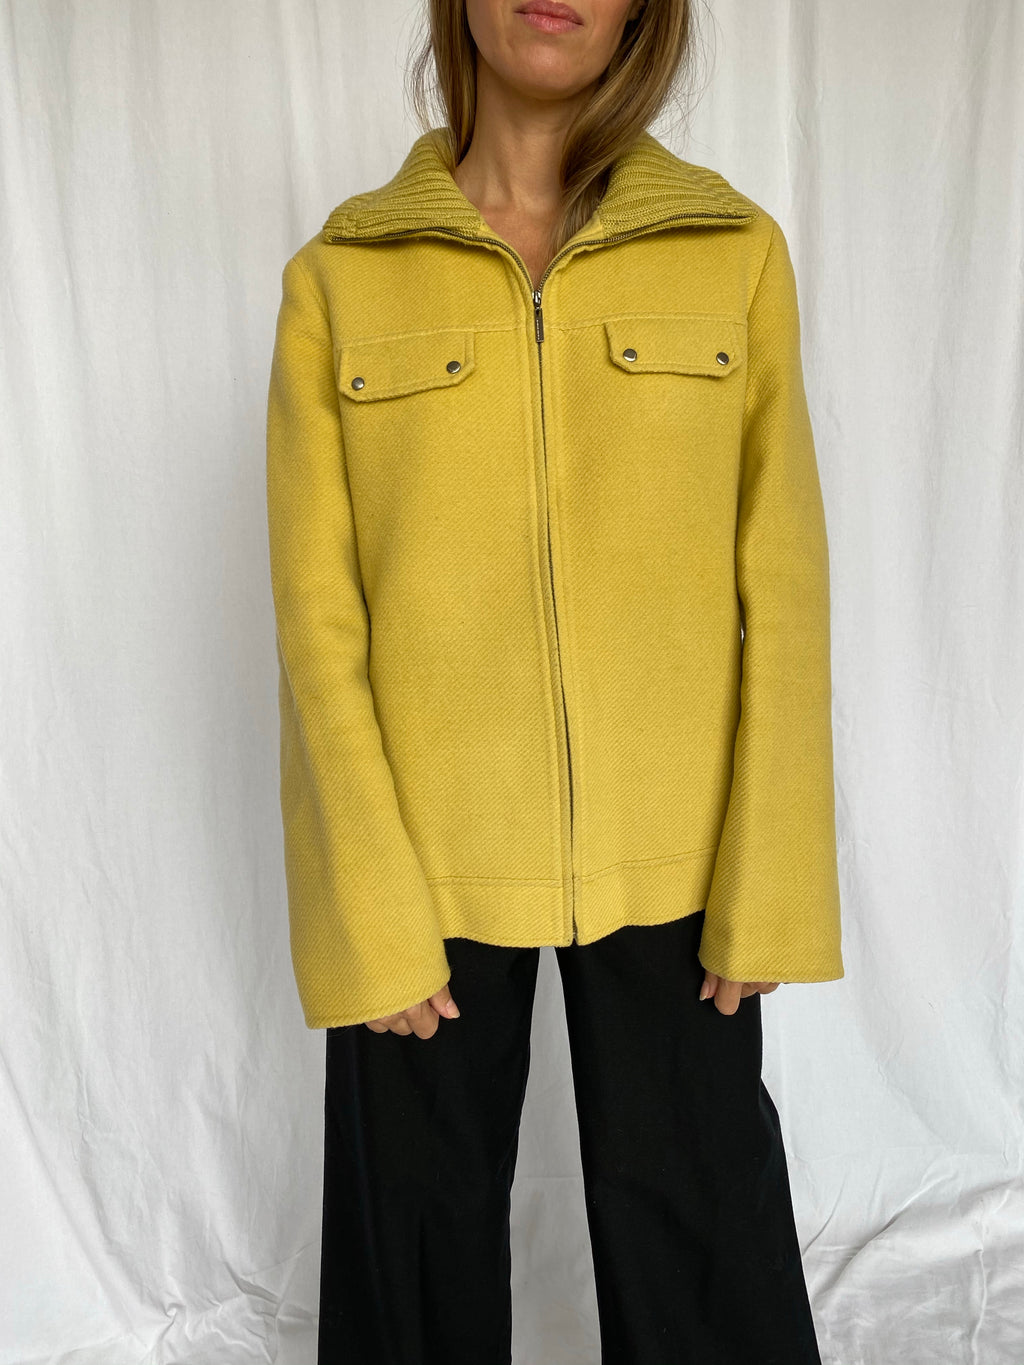 Pierre Cardin Mustard Yellow Wool Zipper Jacket M